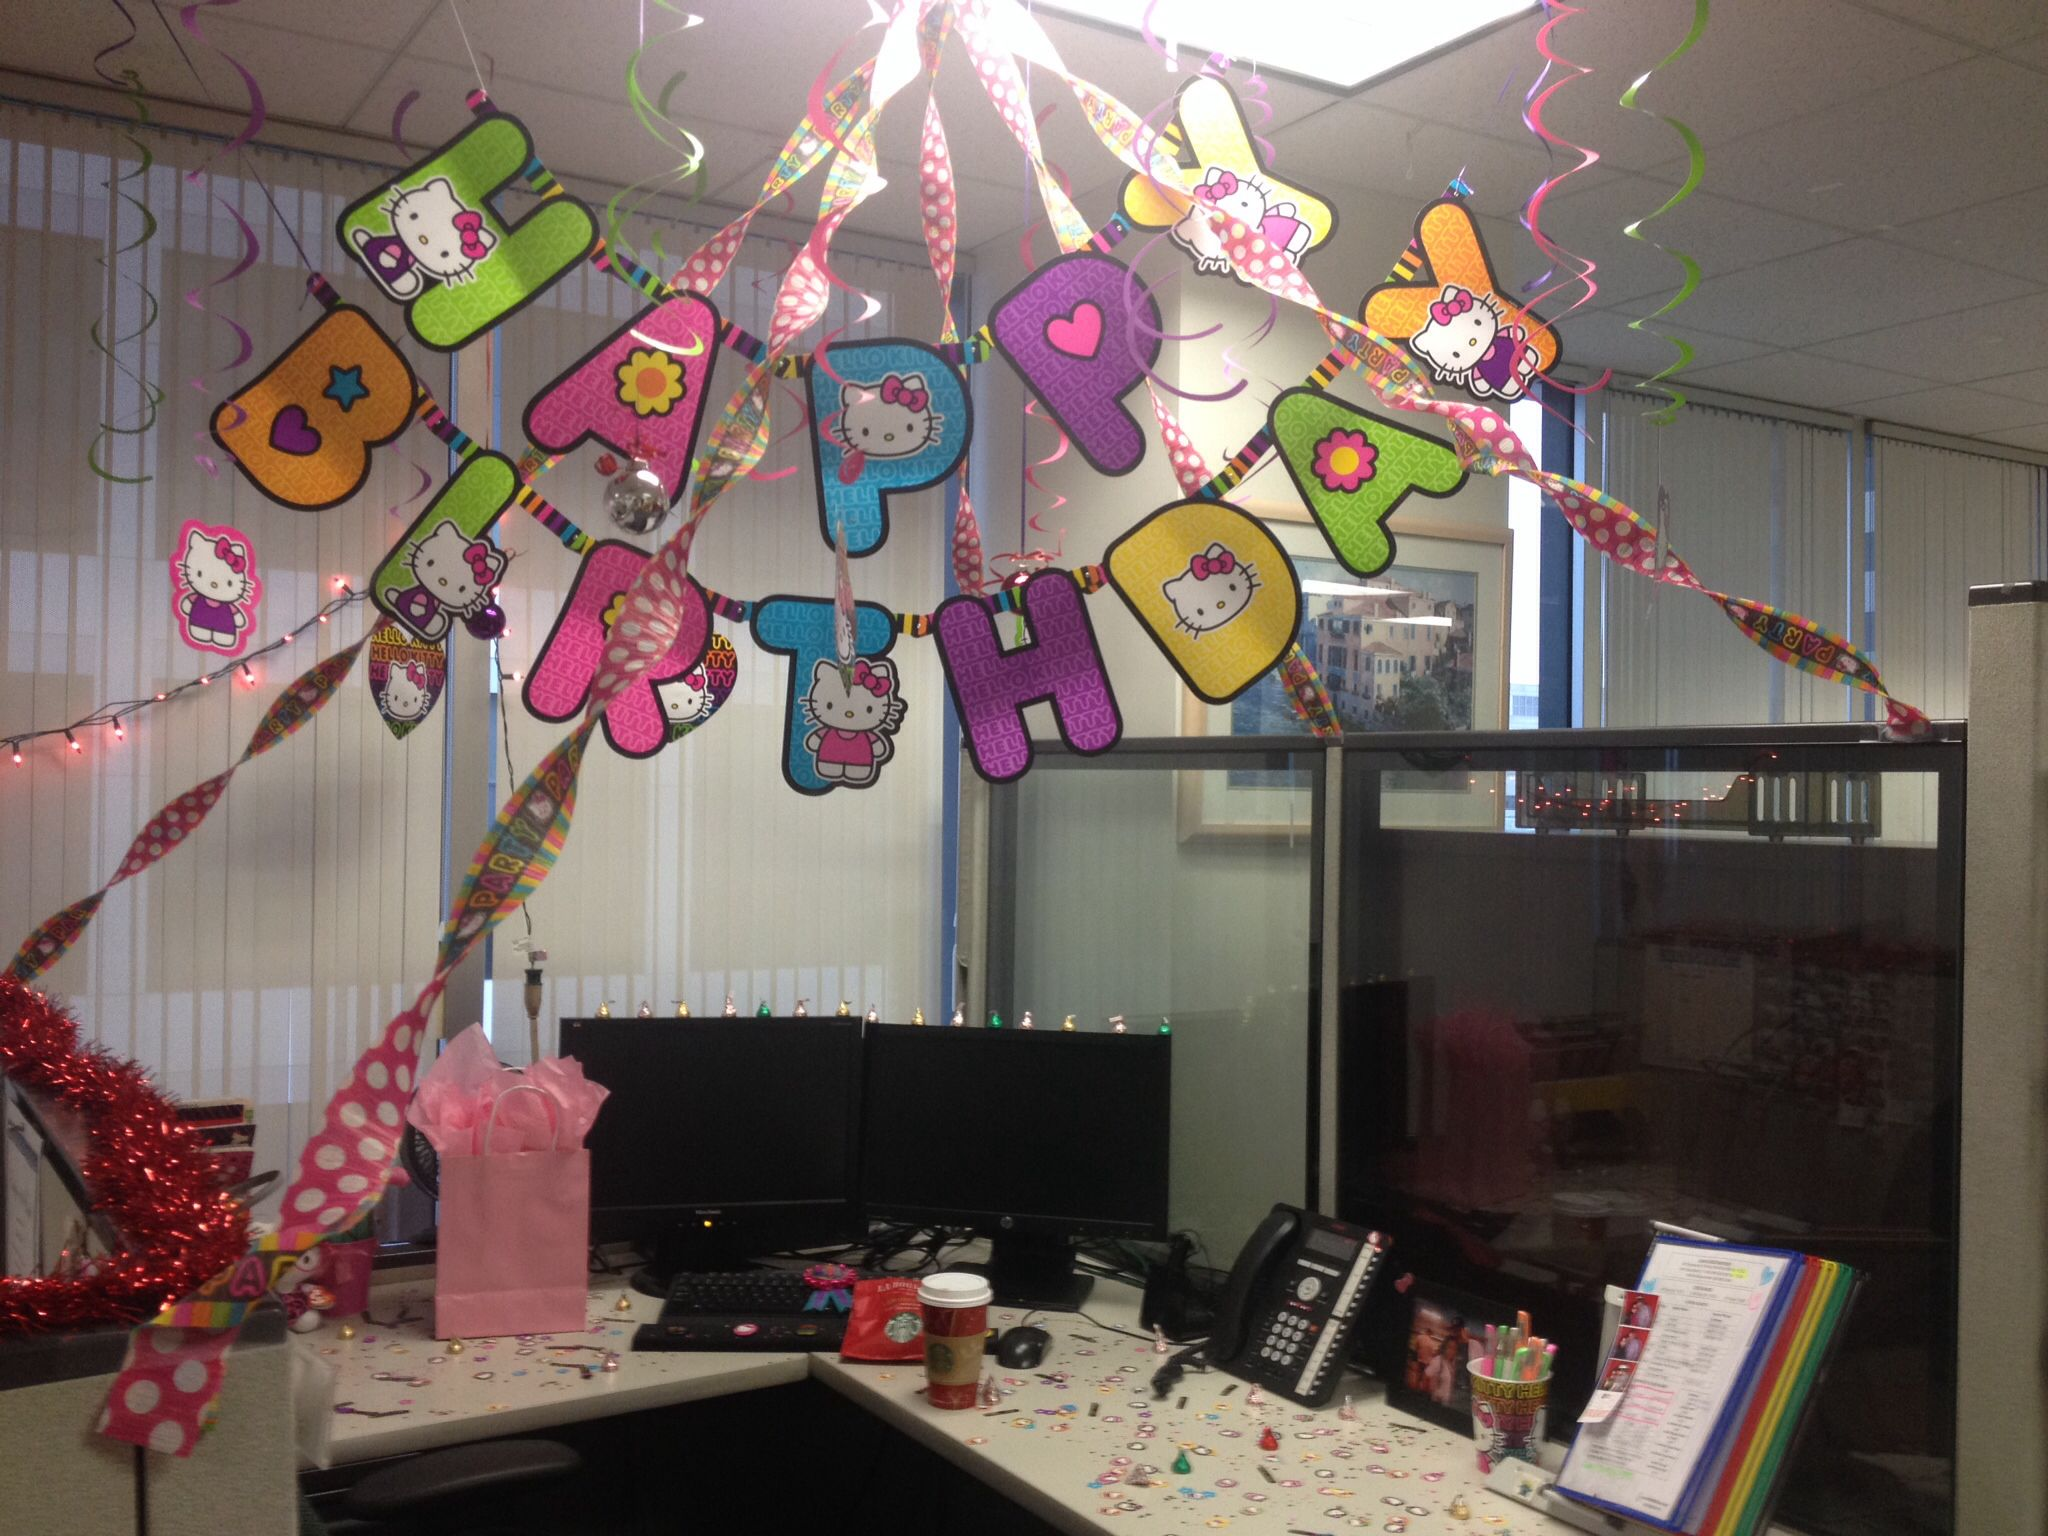 Cubicle Decorations For Birthday My Birthday Cubicle Hello Kitty Randomness Ideas Pinterest